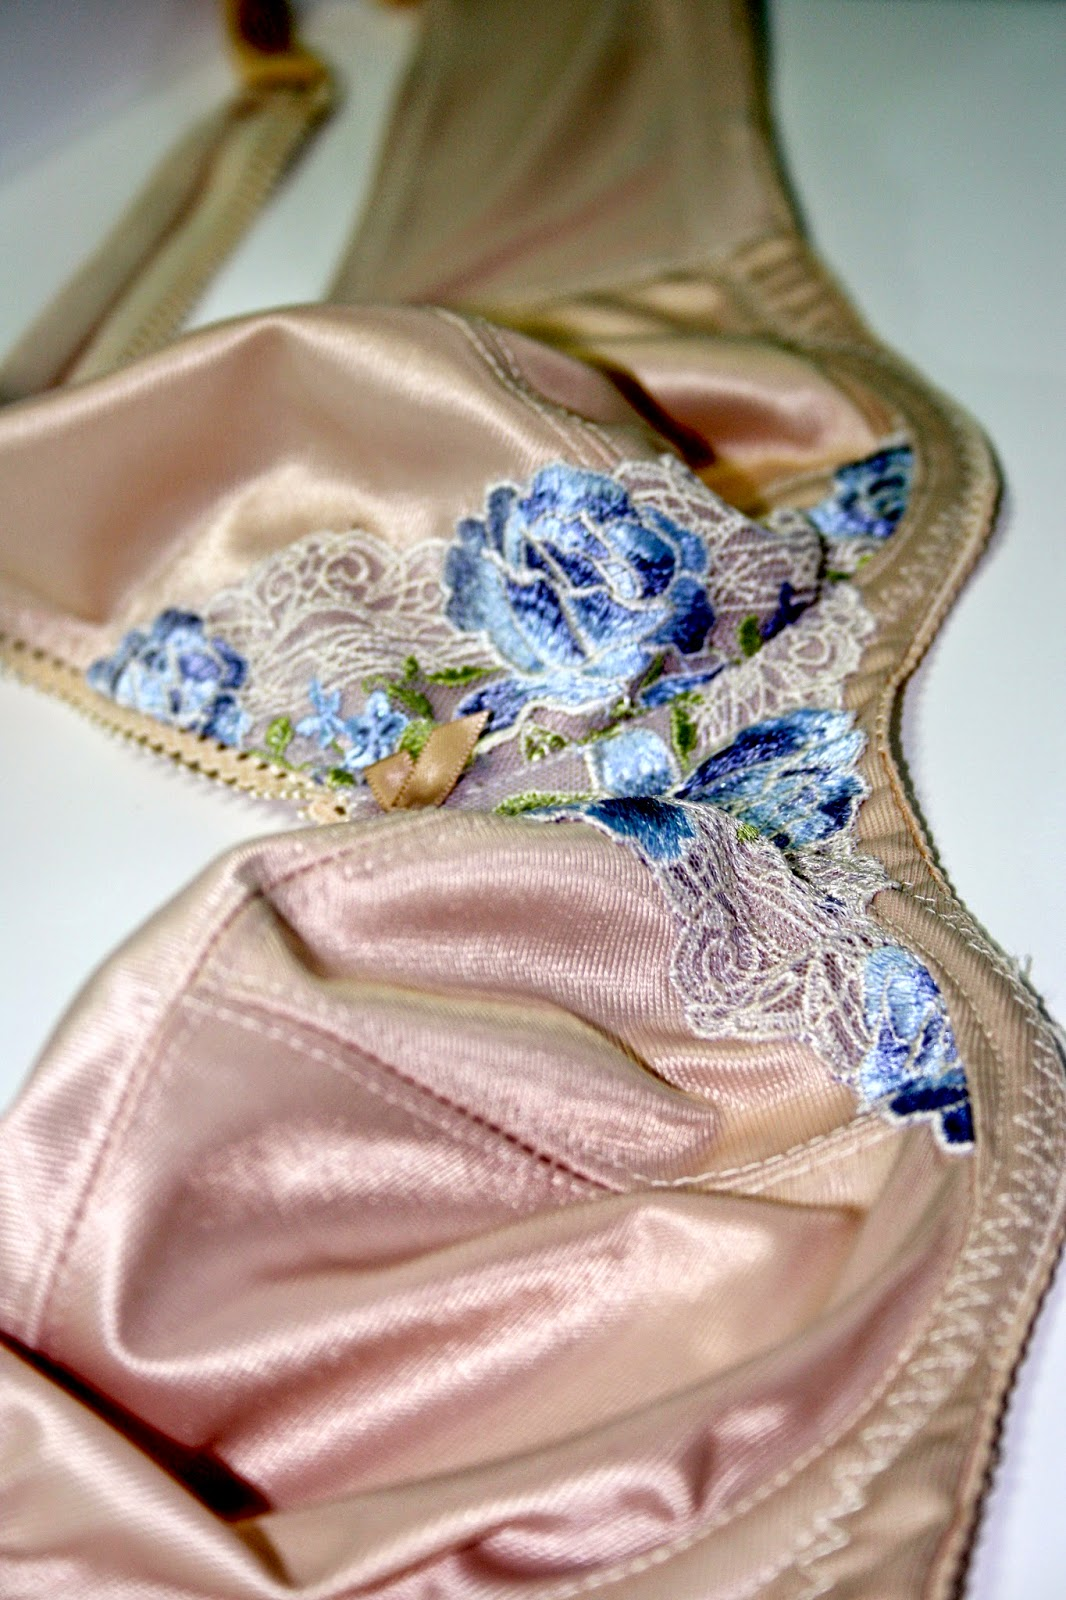 Custom lingerie sewing. www.isitreallysewstrange.blogspot.com